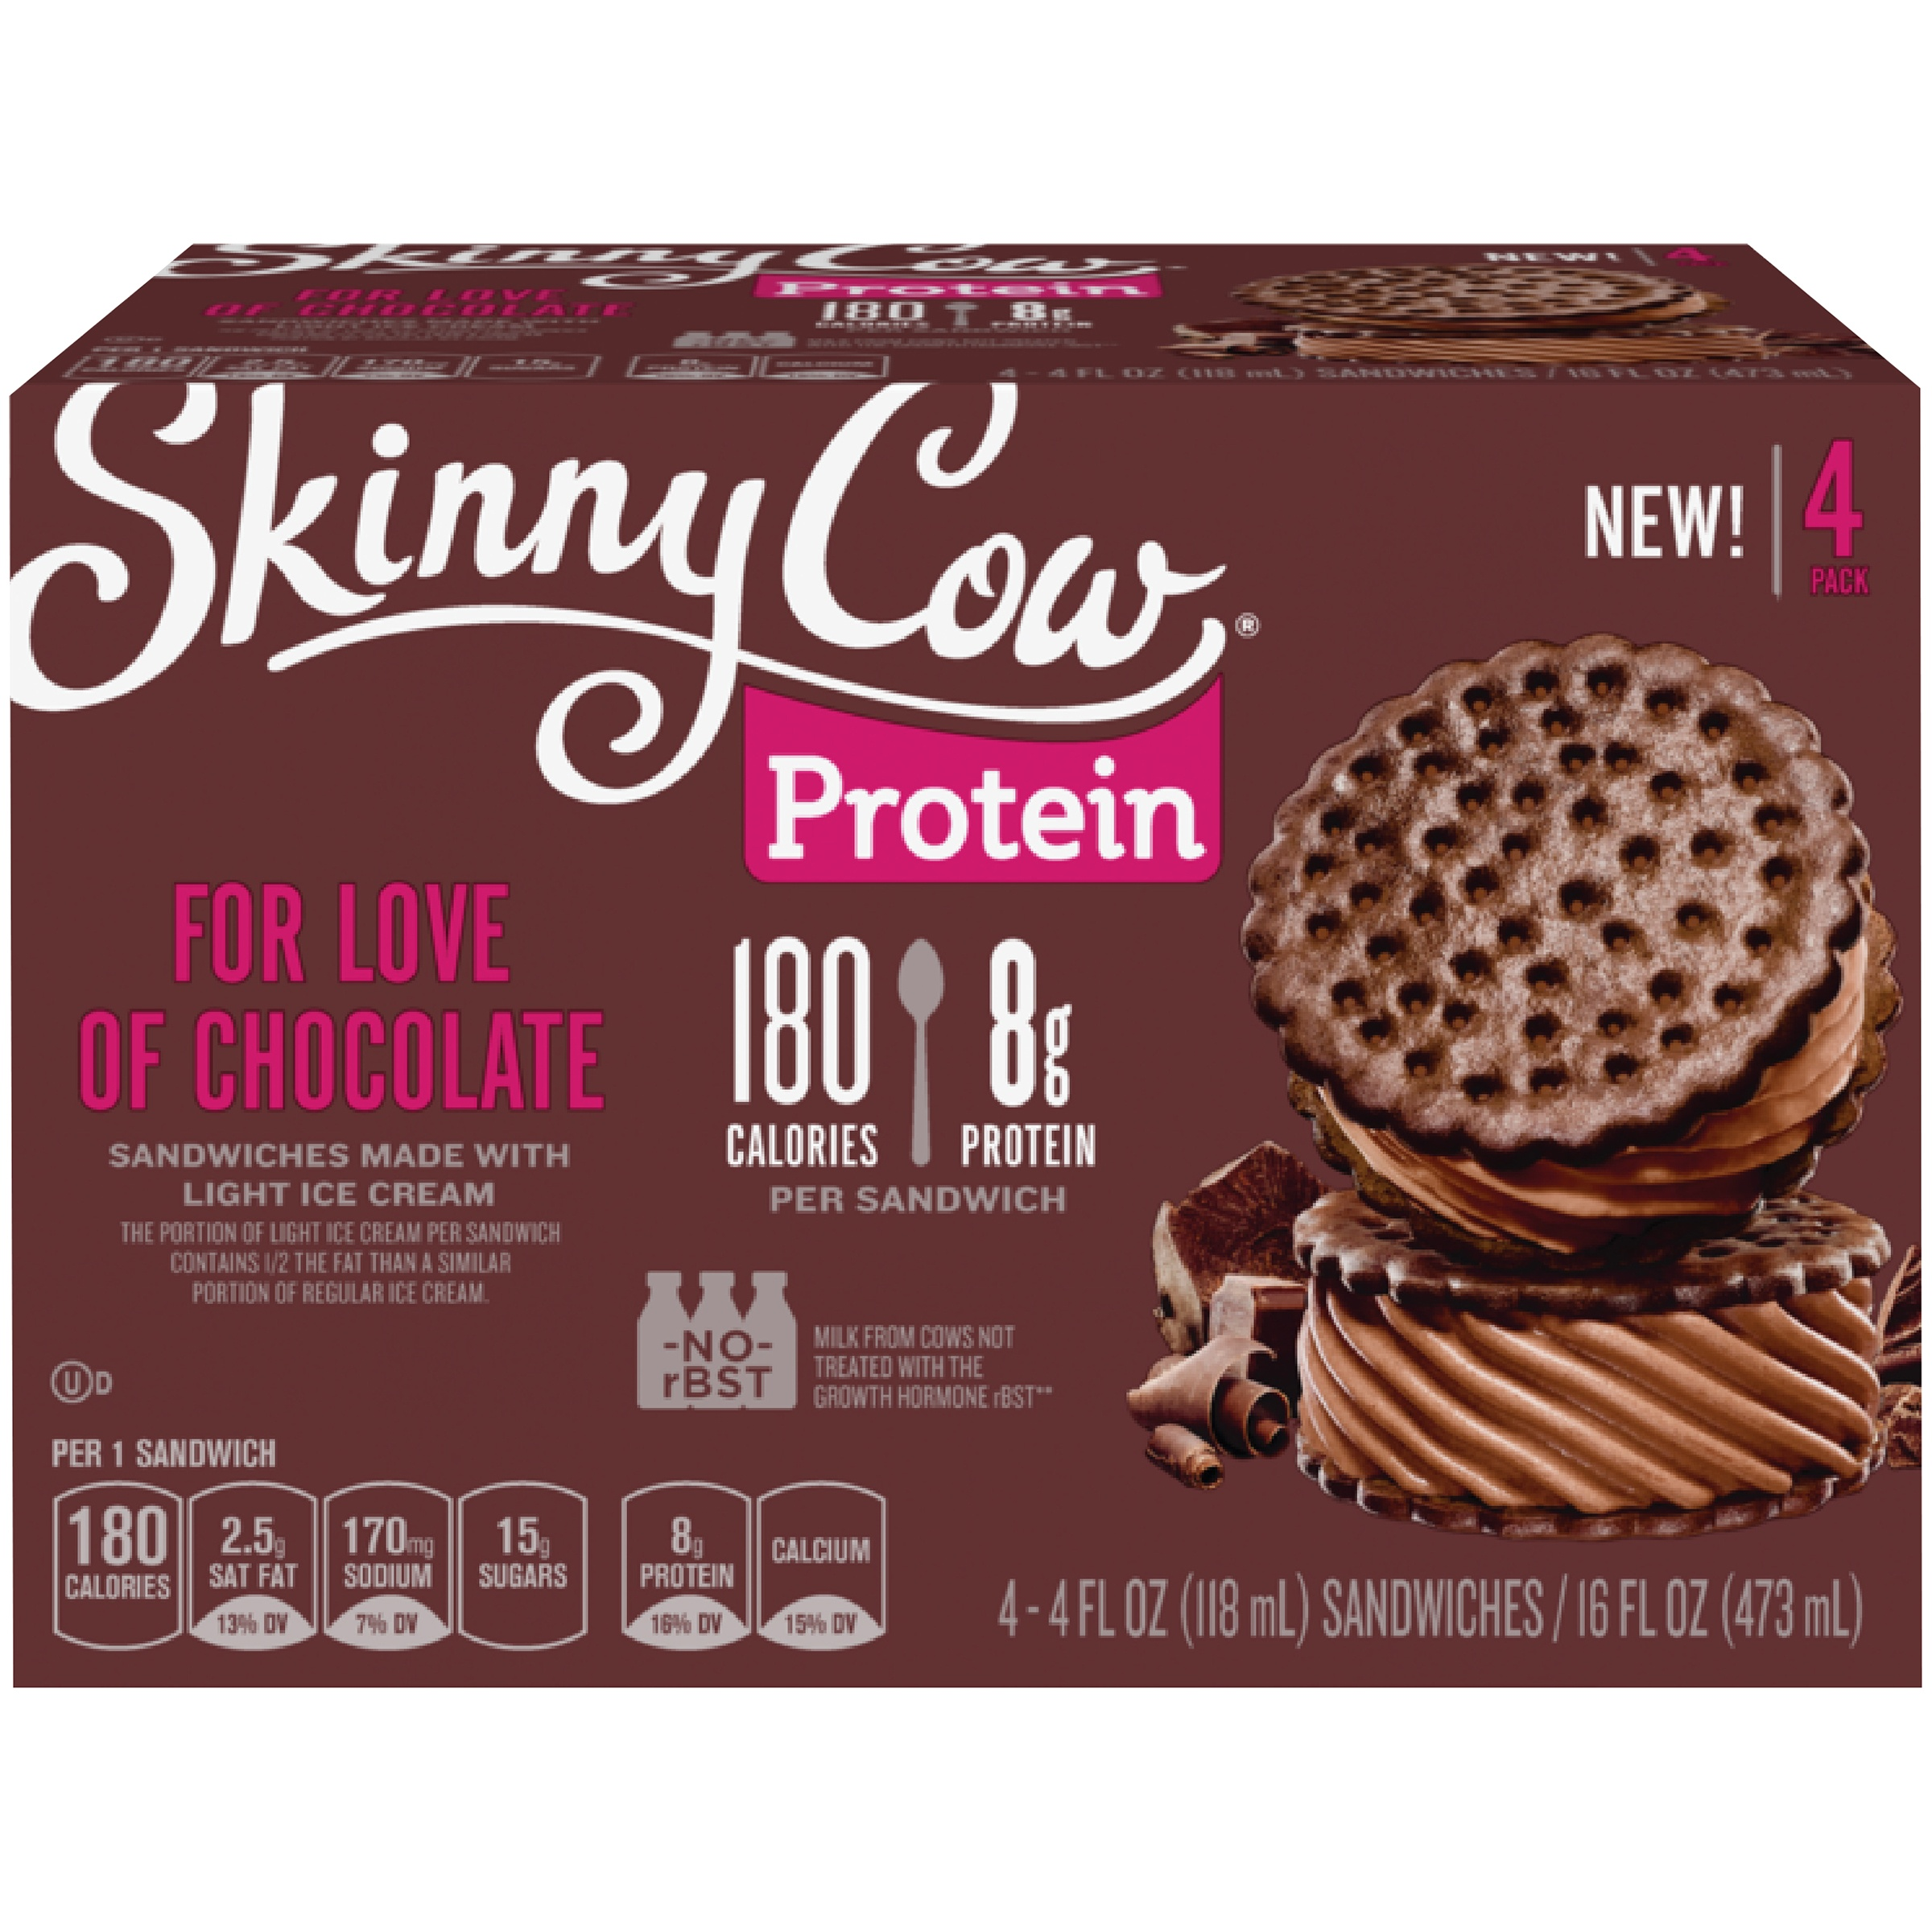 SKINNY COW For Love of Chocolate Ice Cream Sandwich – Delicious Light Chocolate Ice Cream Sandwich, 8 Grams of Protein and 180 Calories, SIZE